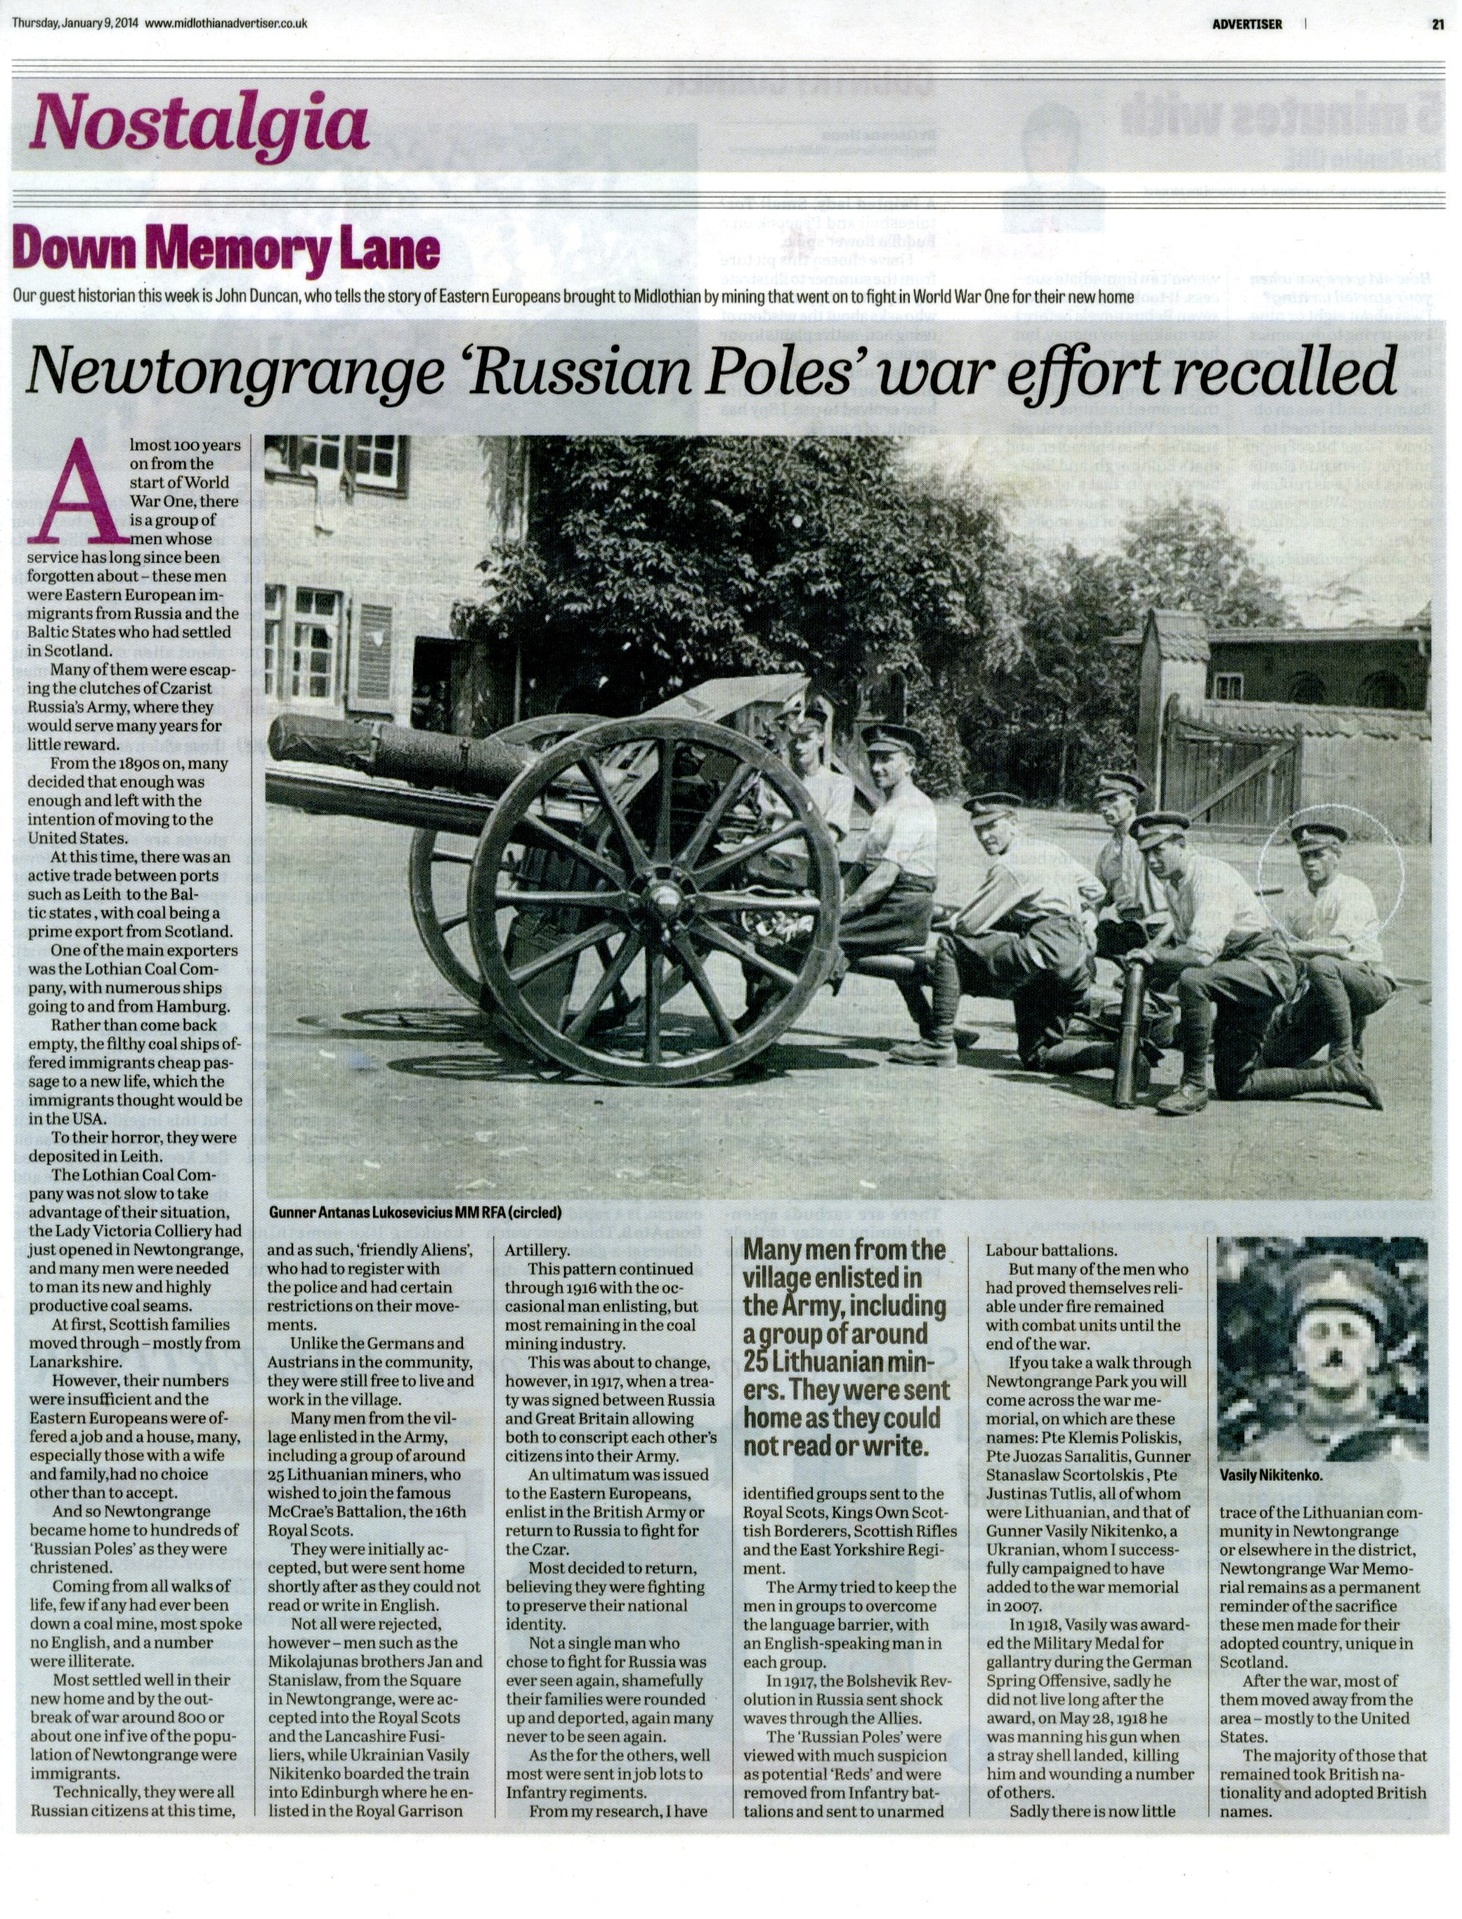 The 'Russian Poles' of Newtongrange